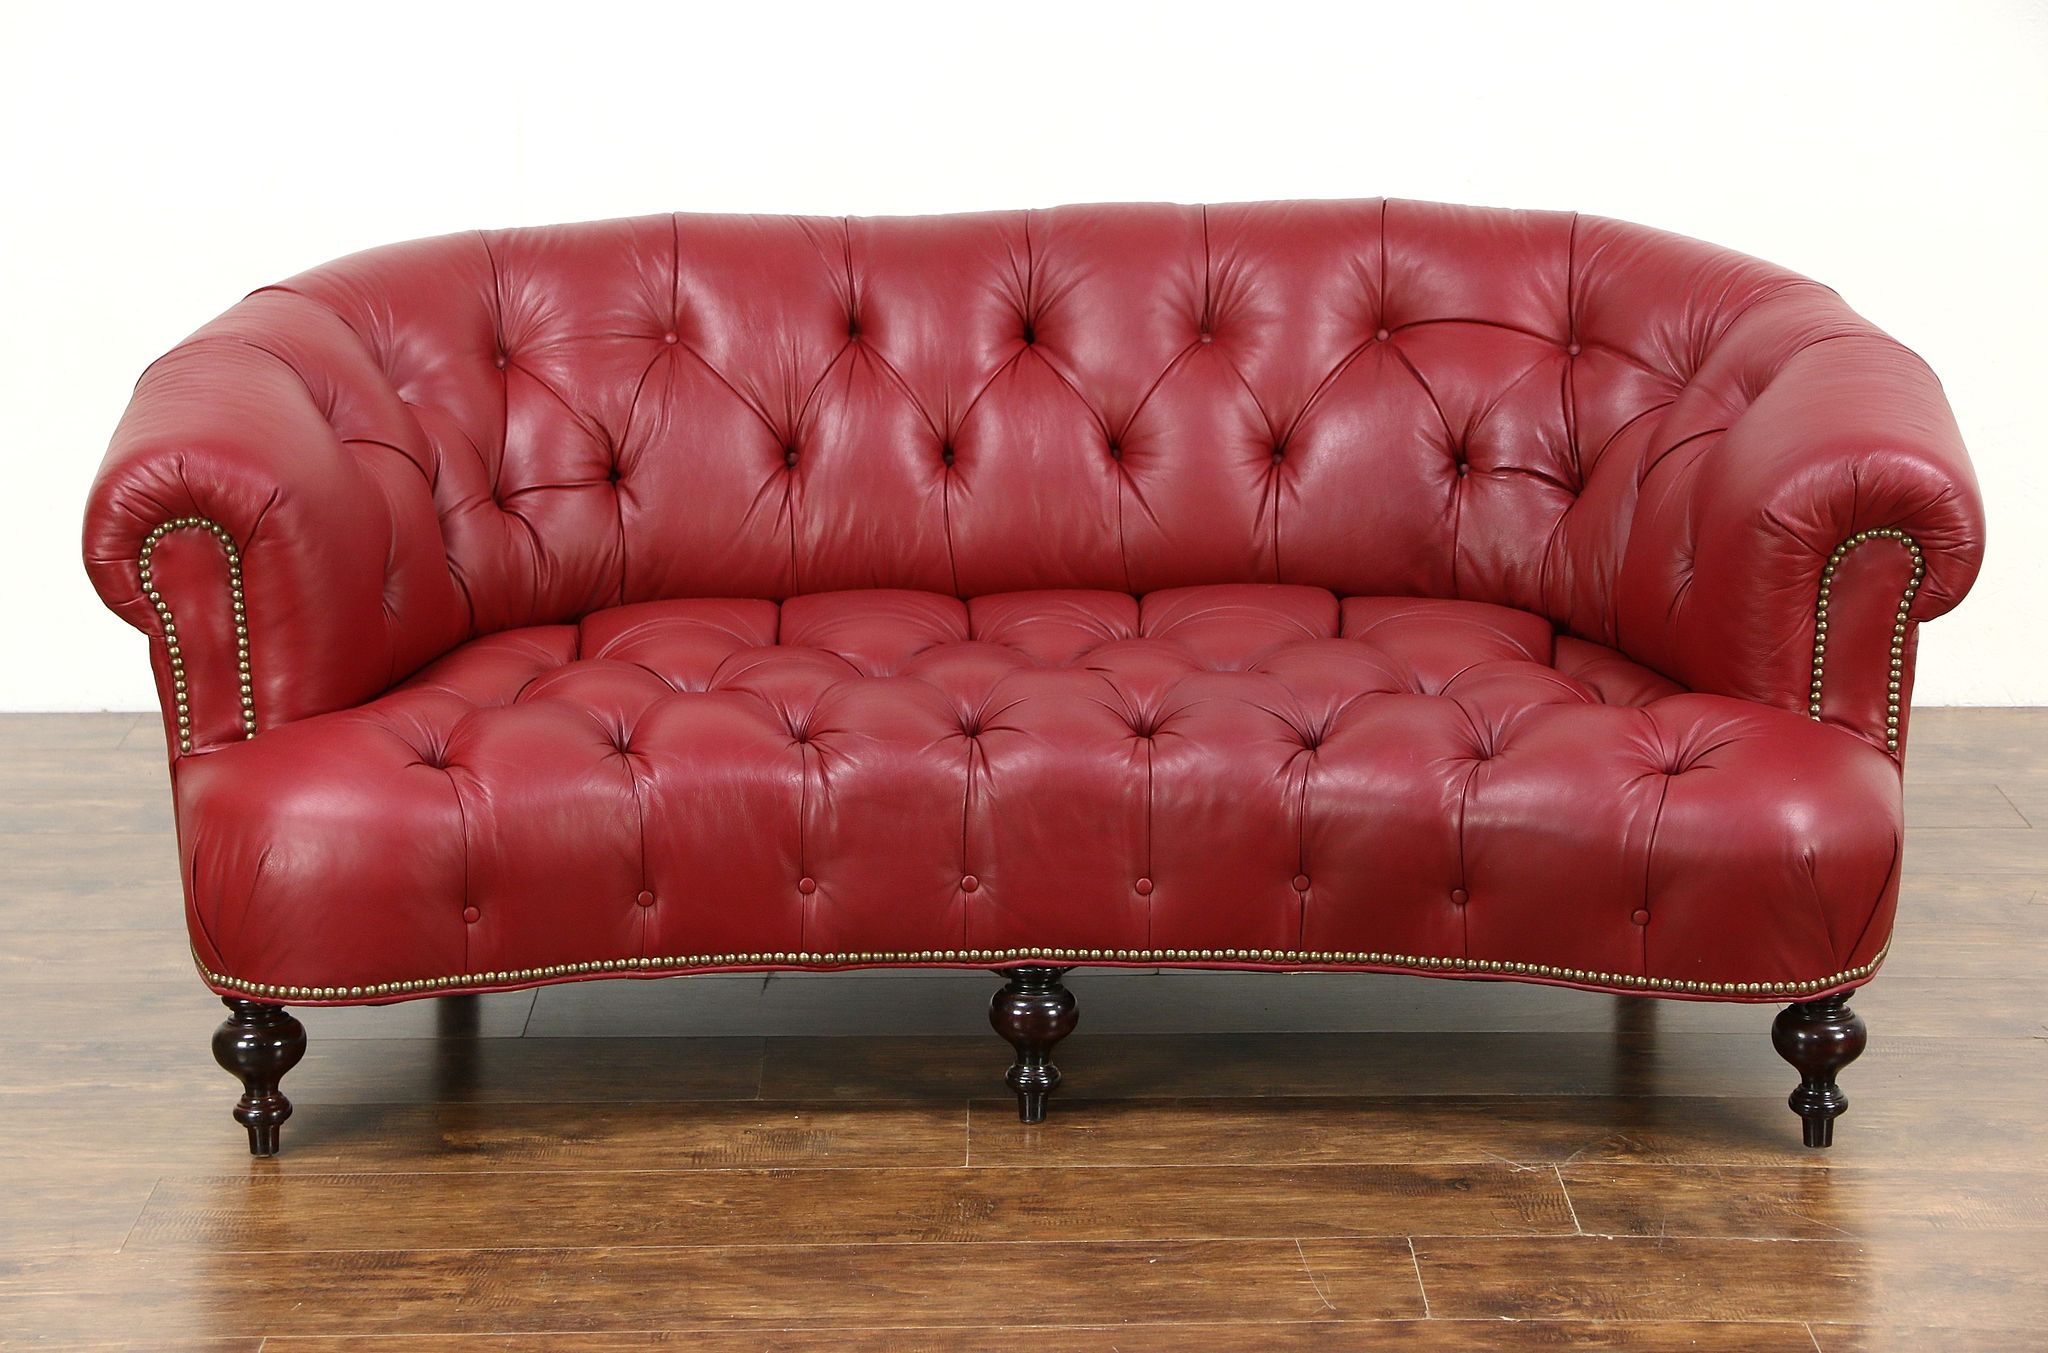 Chesterfield Tufted Leather Sofa, Brass Nailhead Trim